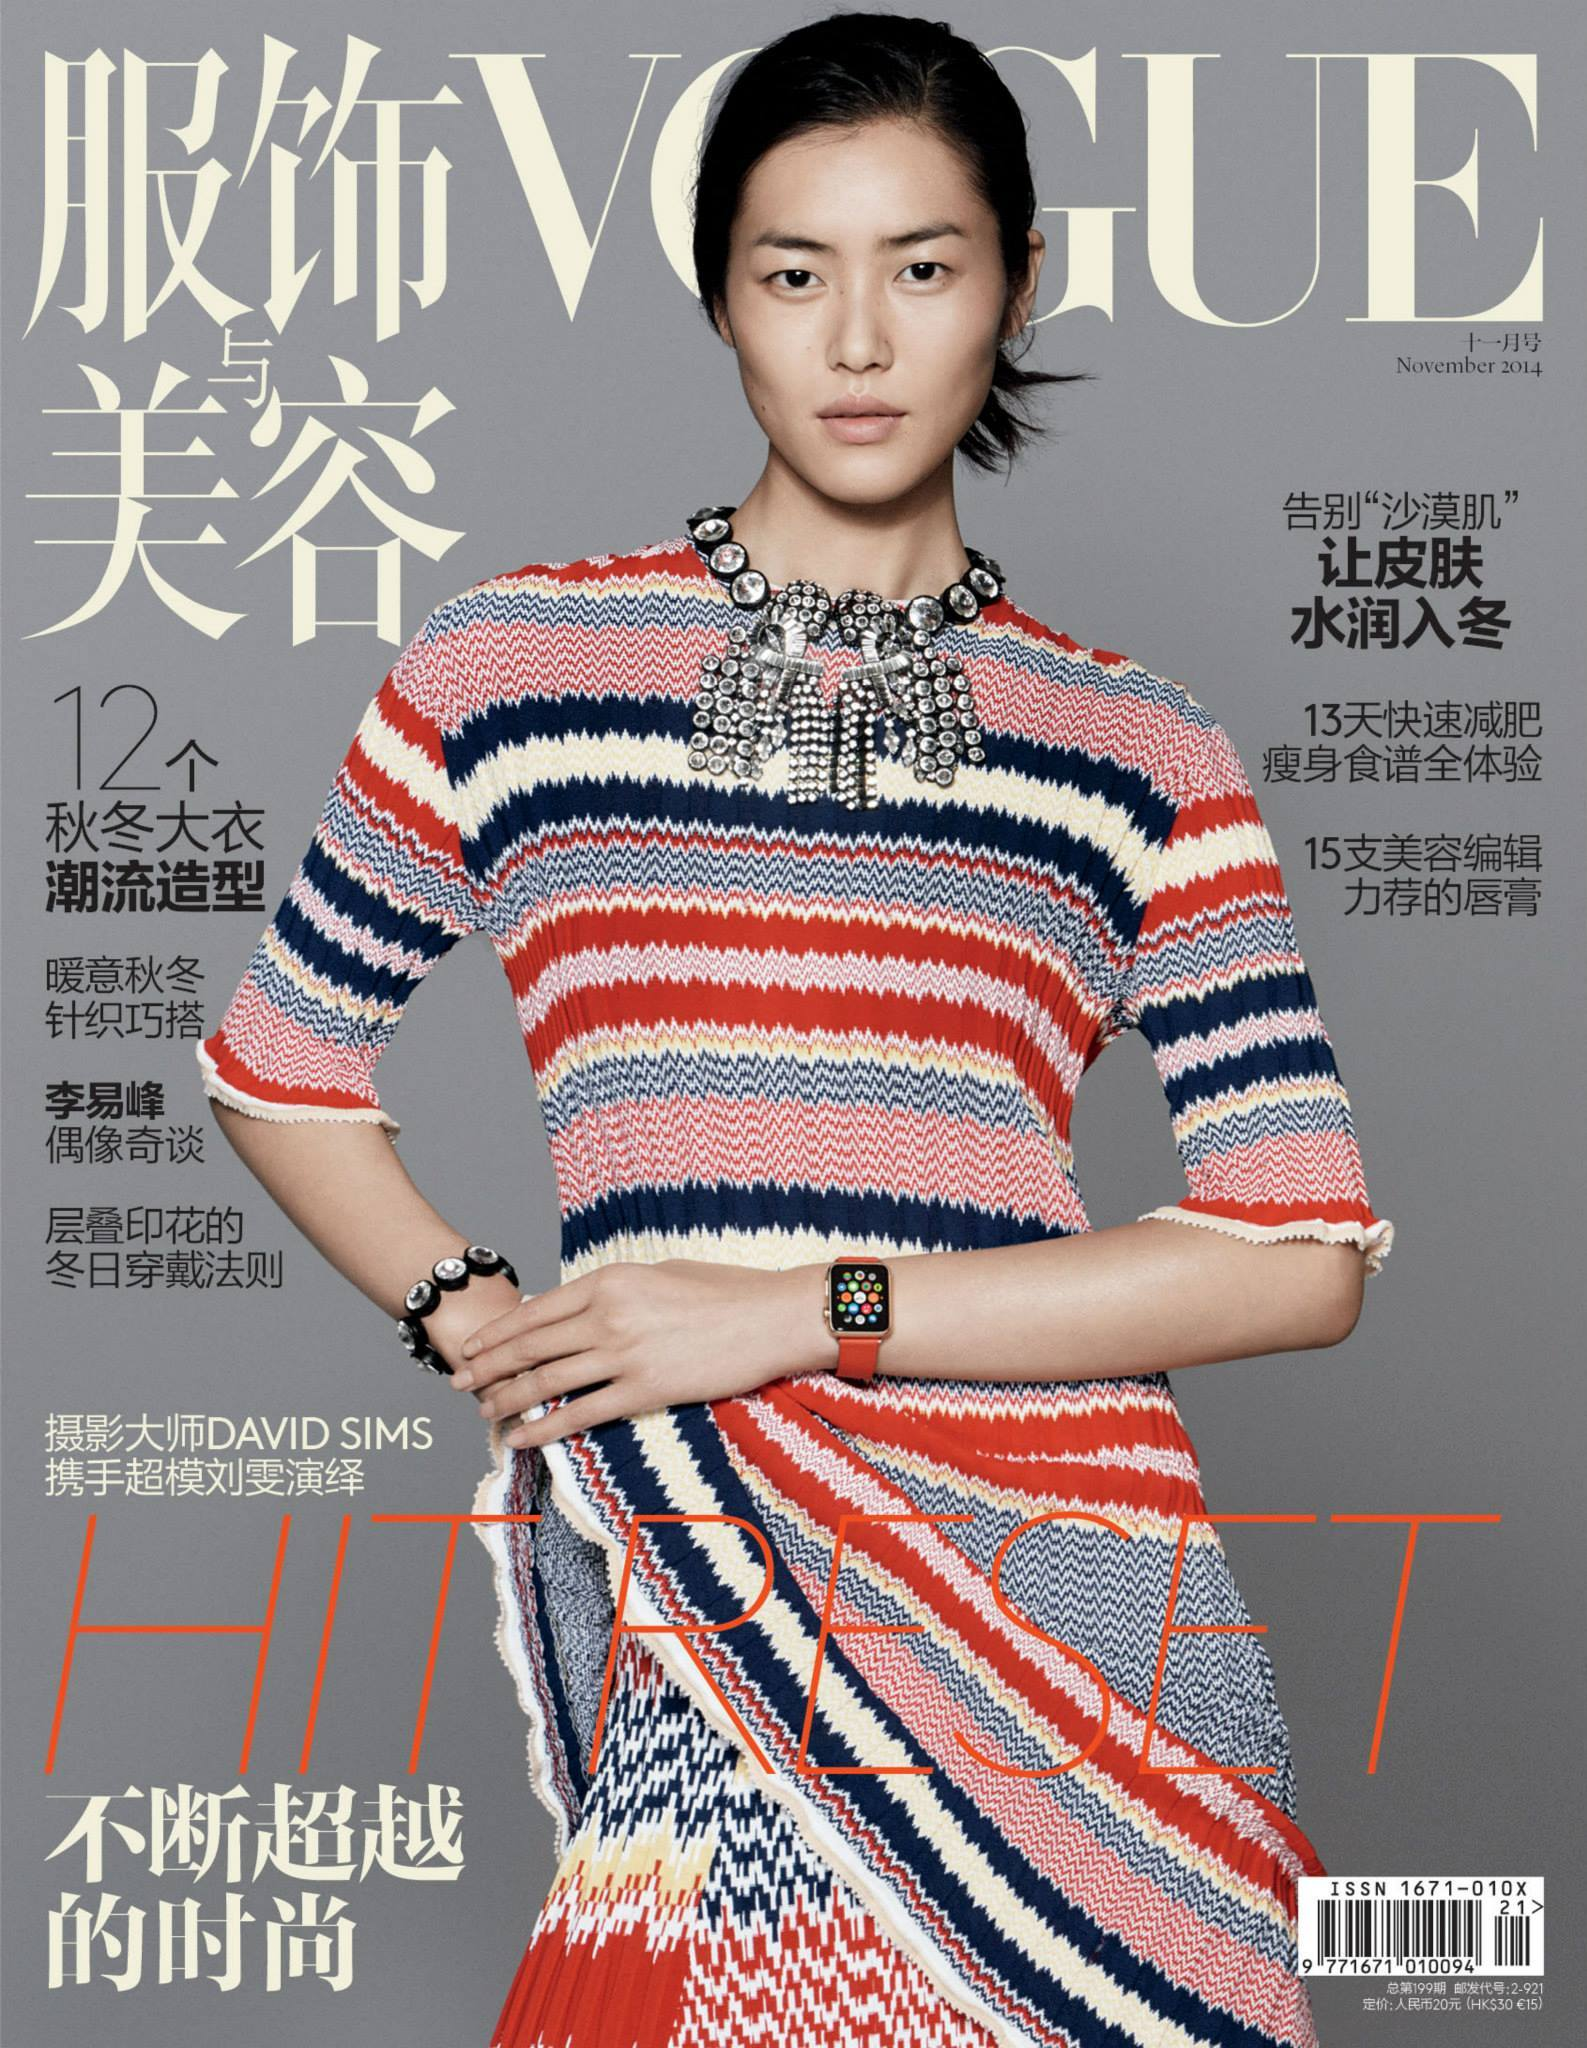 Модель Liu Wen в часах Apple Watch. Изображение: обложка Vogue Китай, ноябрь 2014